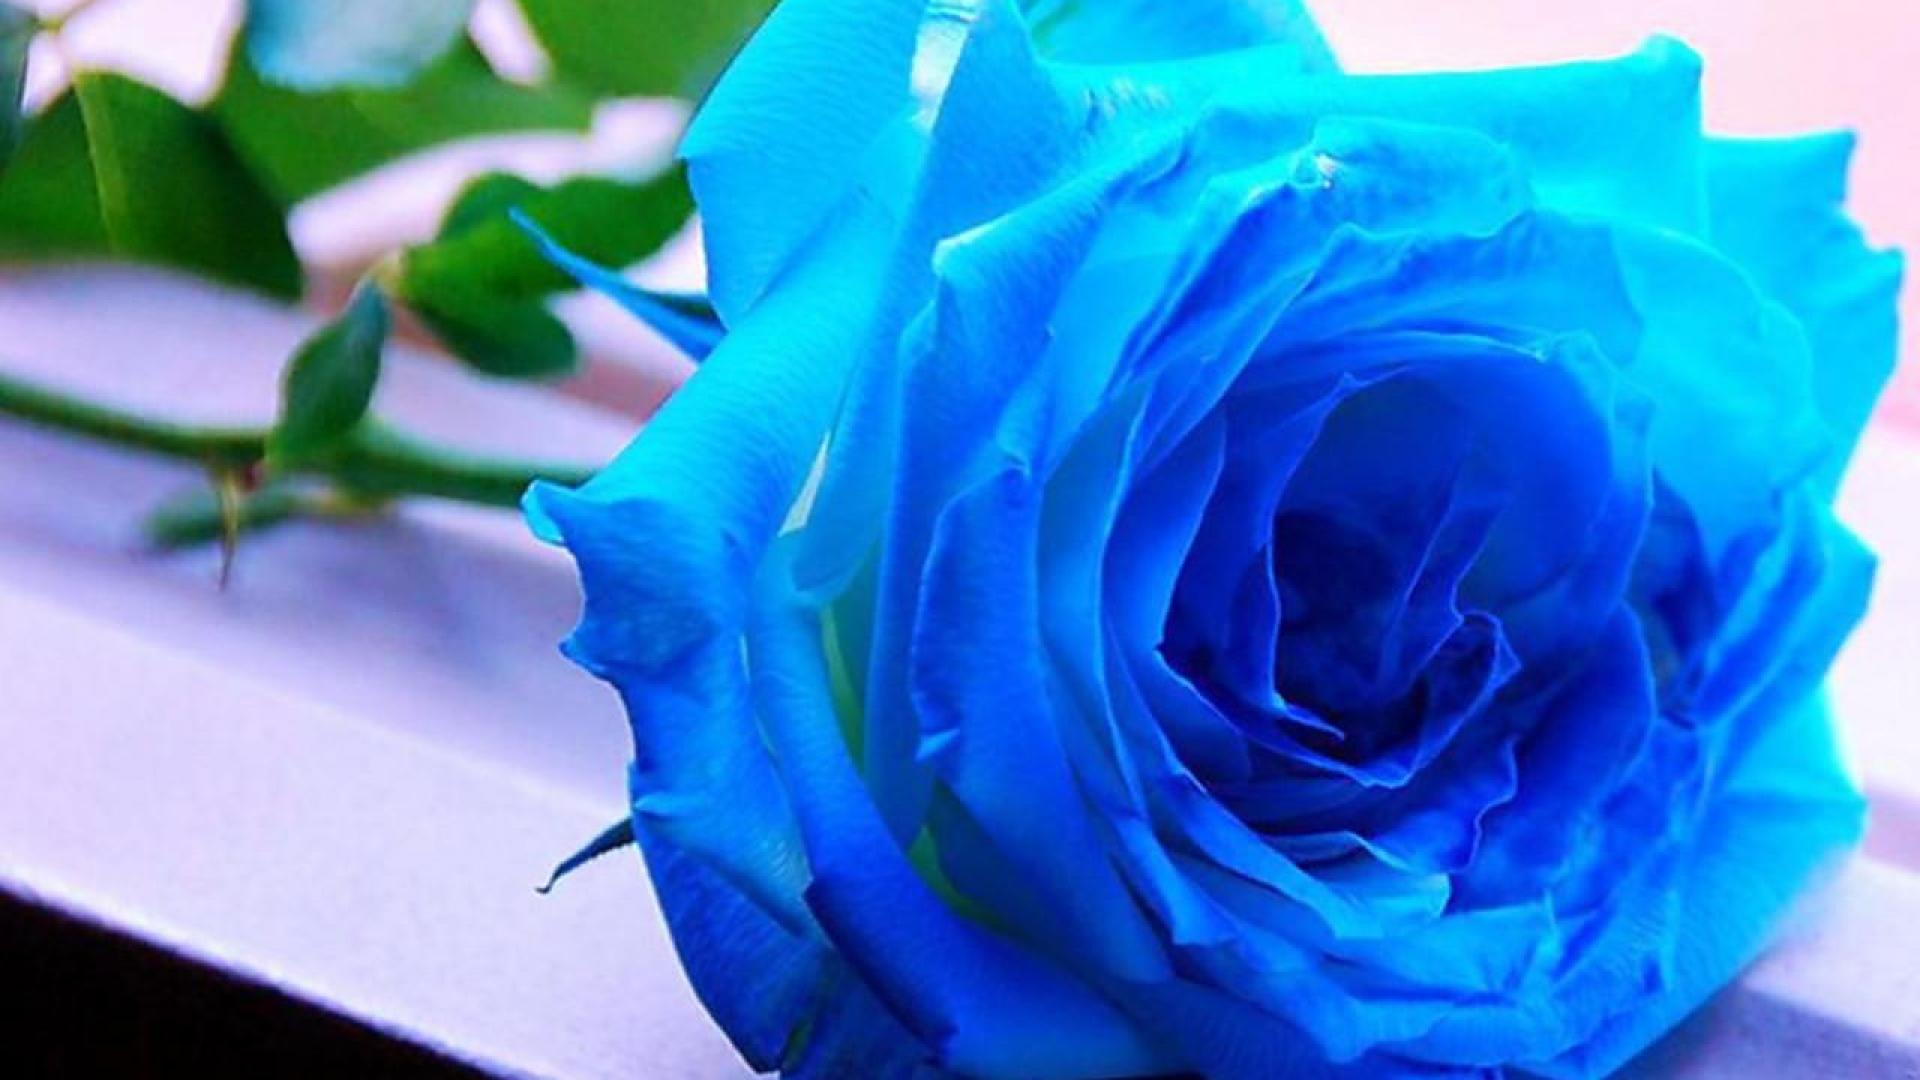 blue roses wallpaper 11 free wallpaper - hdflowerwallpaper